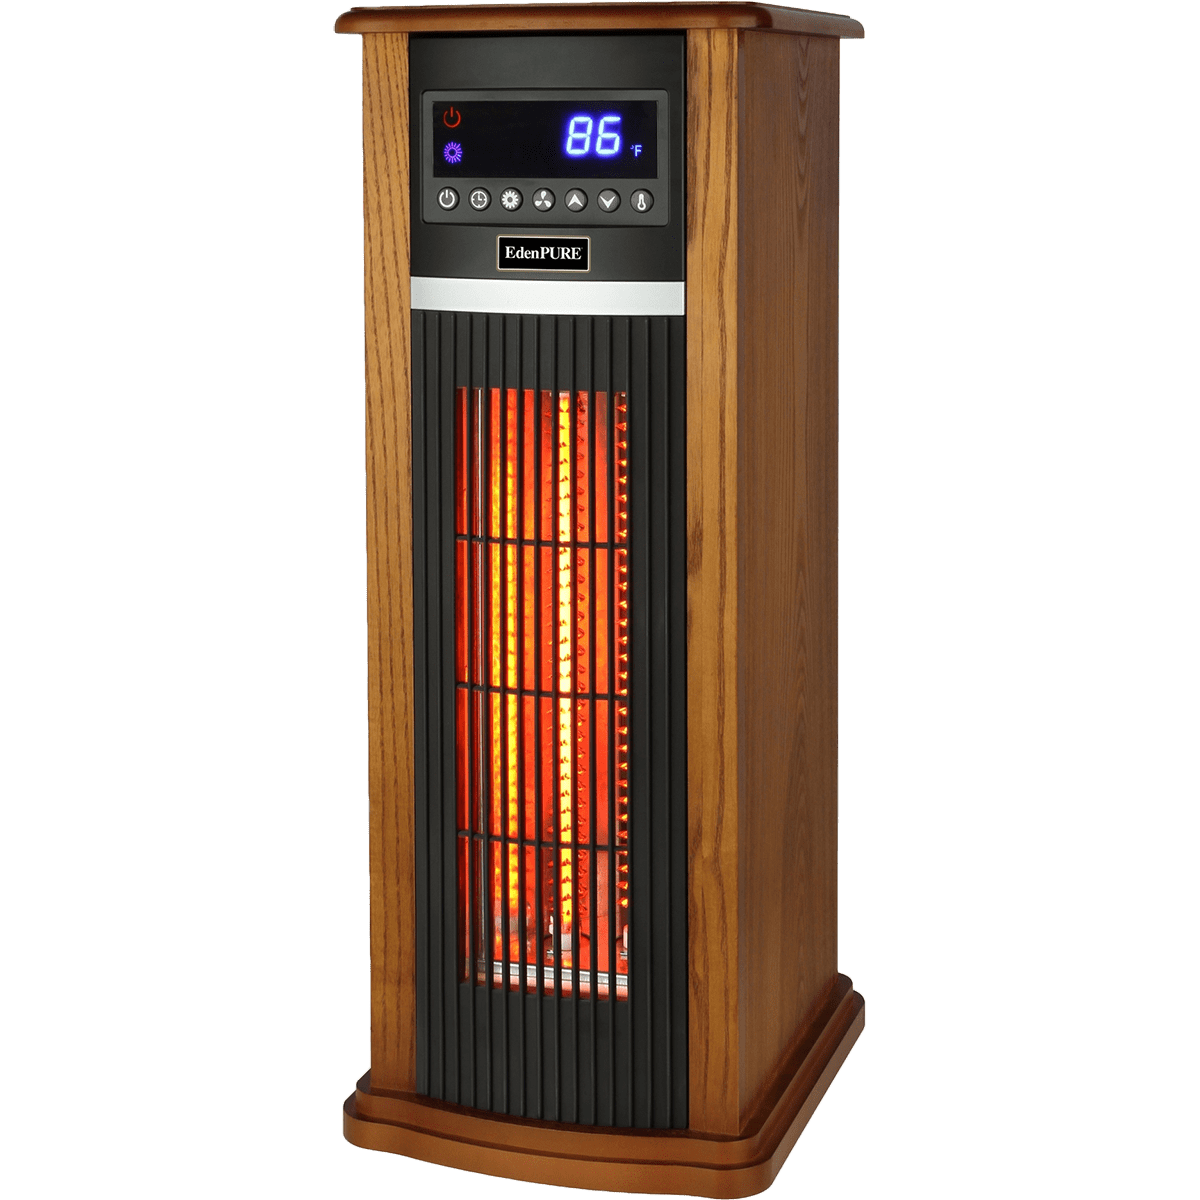 ... edenpure EdenPURE CopperHX W4 Tower Heater | Sylvane on furnace wiring  schematic, edenpure heater parts list ...